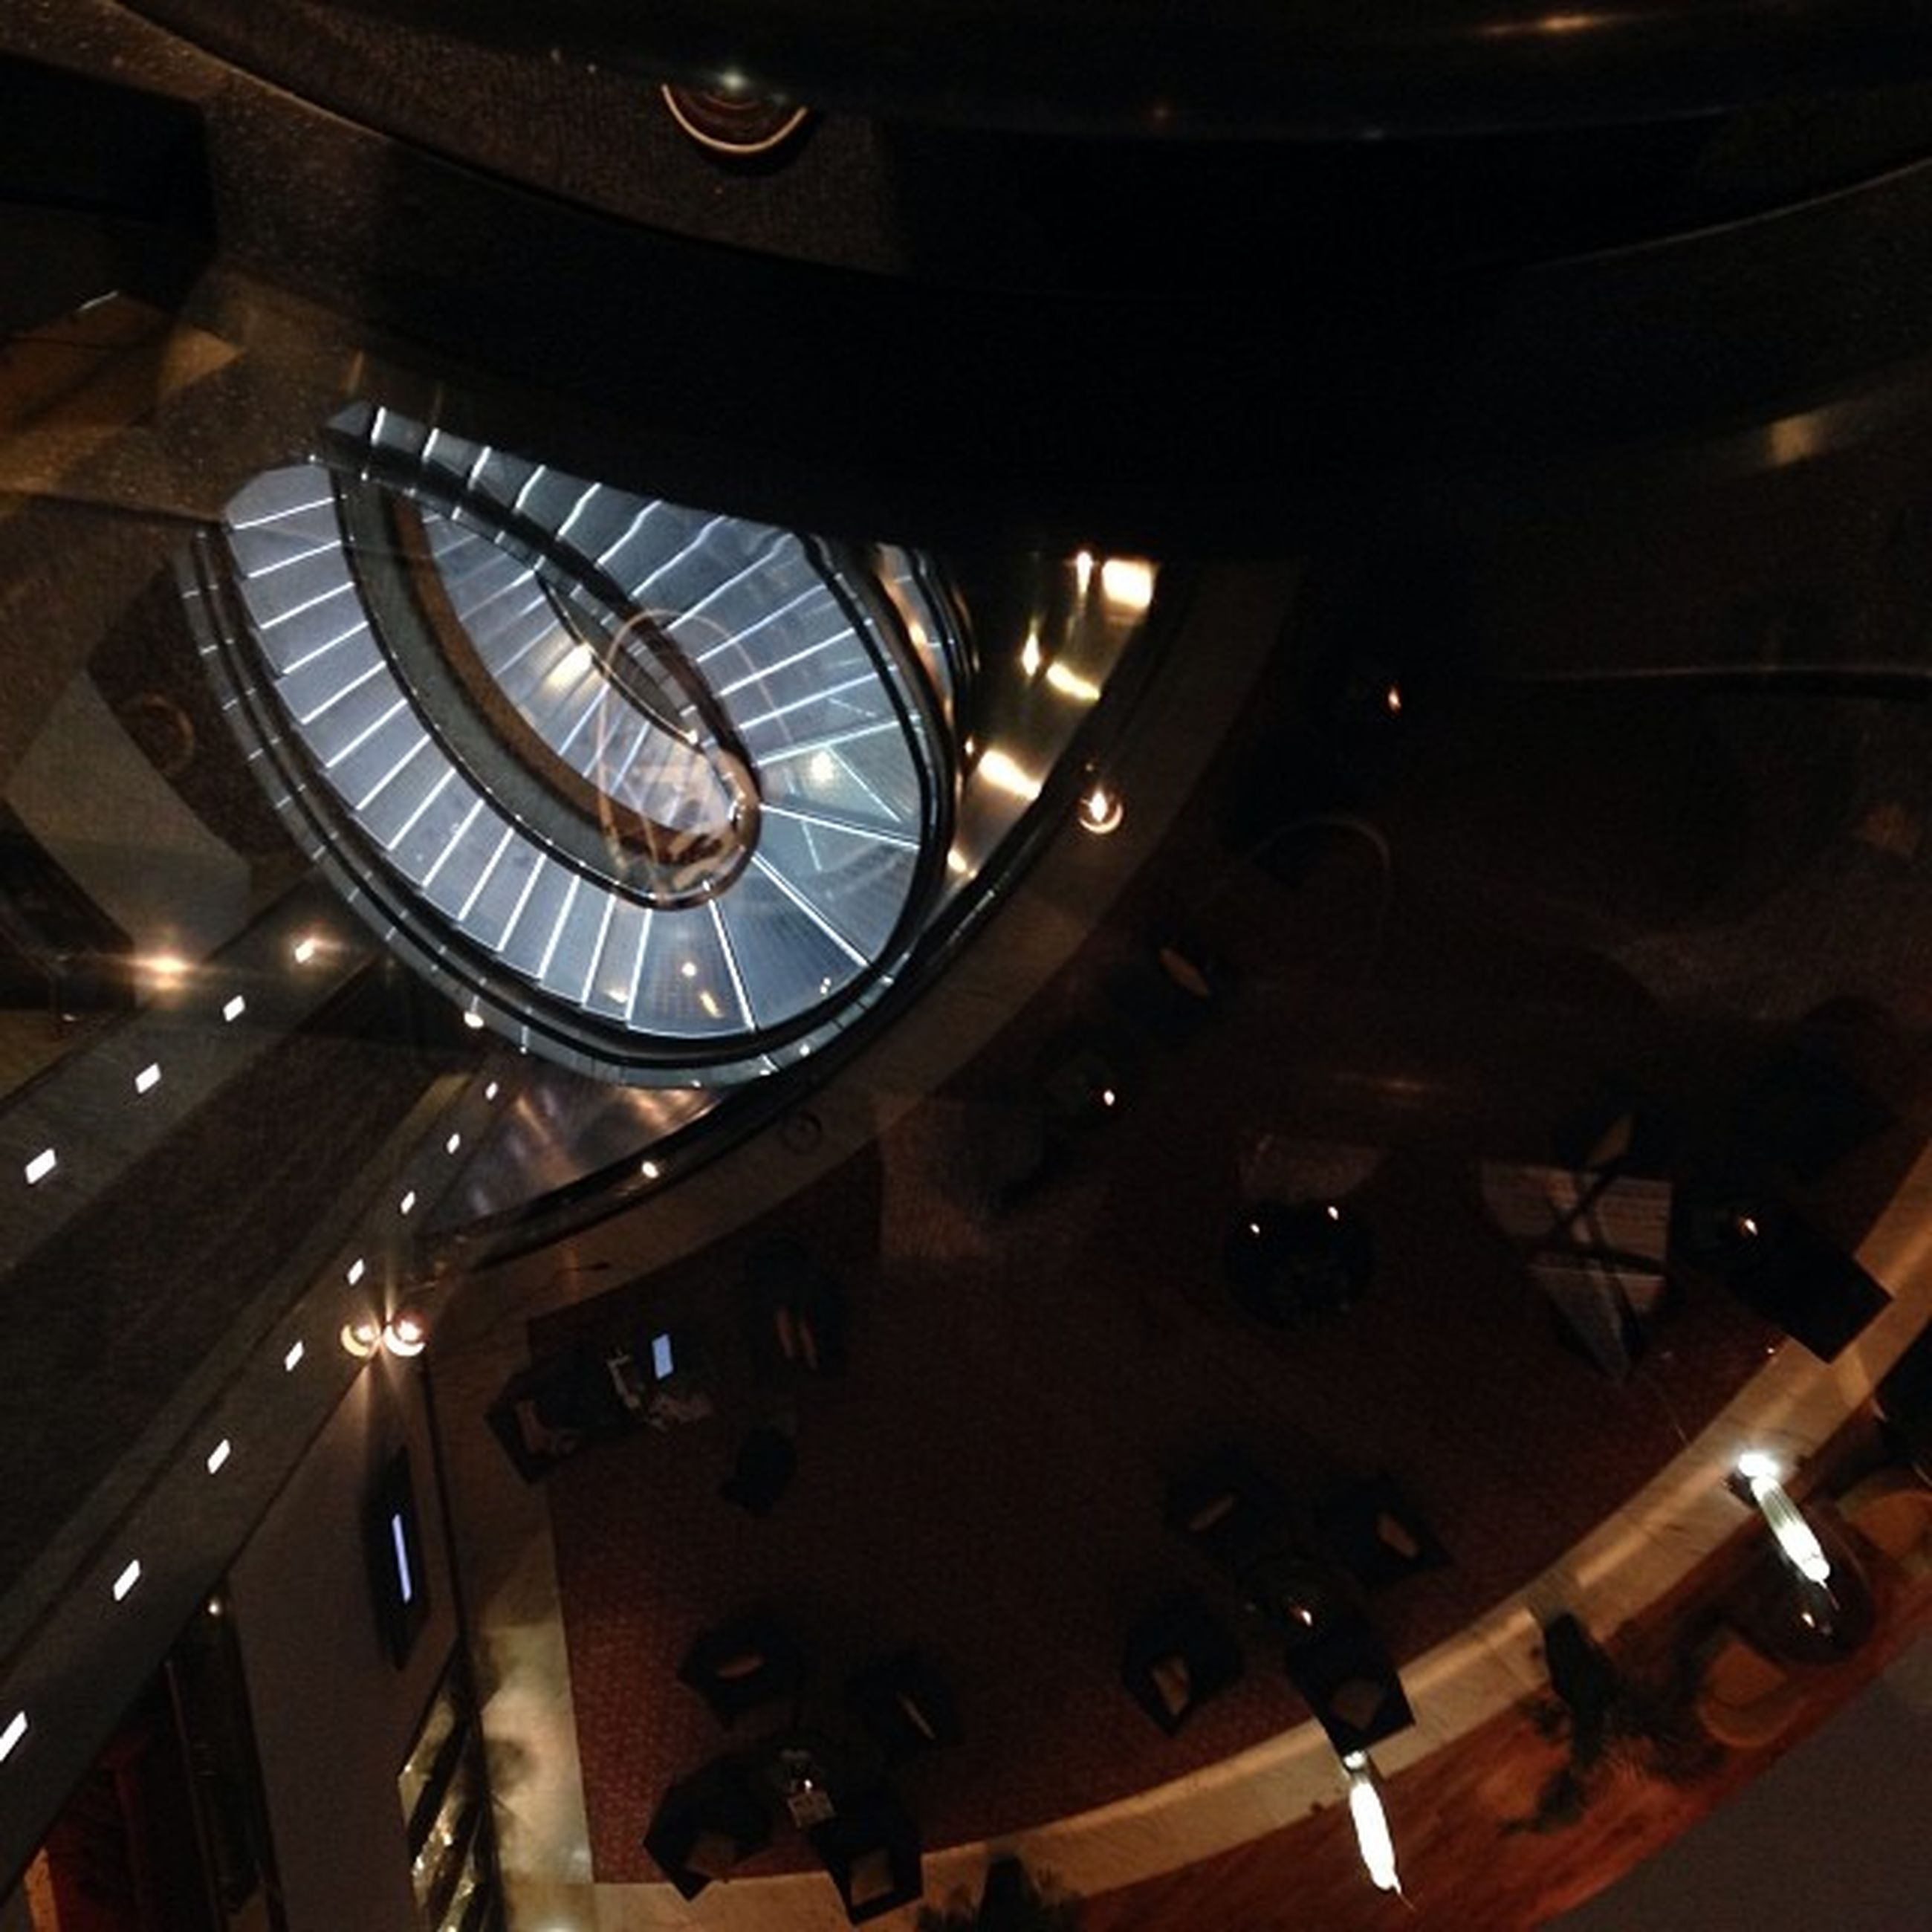 indoors, illuminated, low angle view, architecture, clock, built structure, time, ceiling, circle, glass - material, lighting equipment, technology, modern, no people, night, reflection, geometric shape, arts culture and entertainment, window, hanging